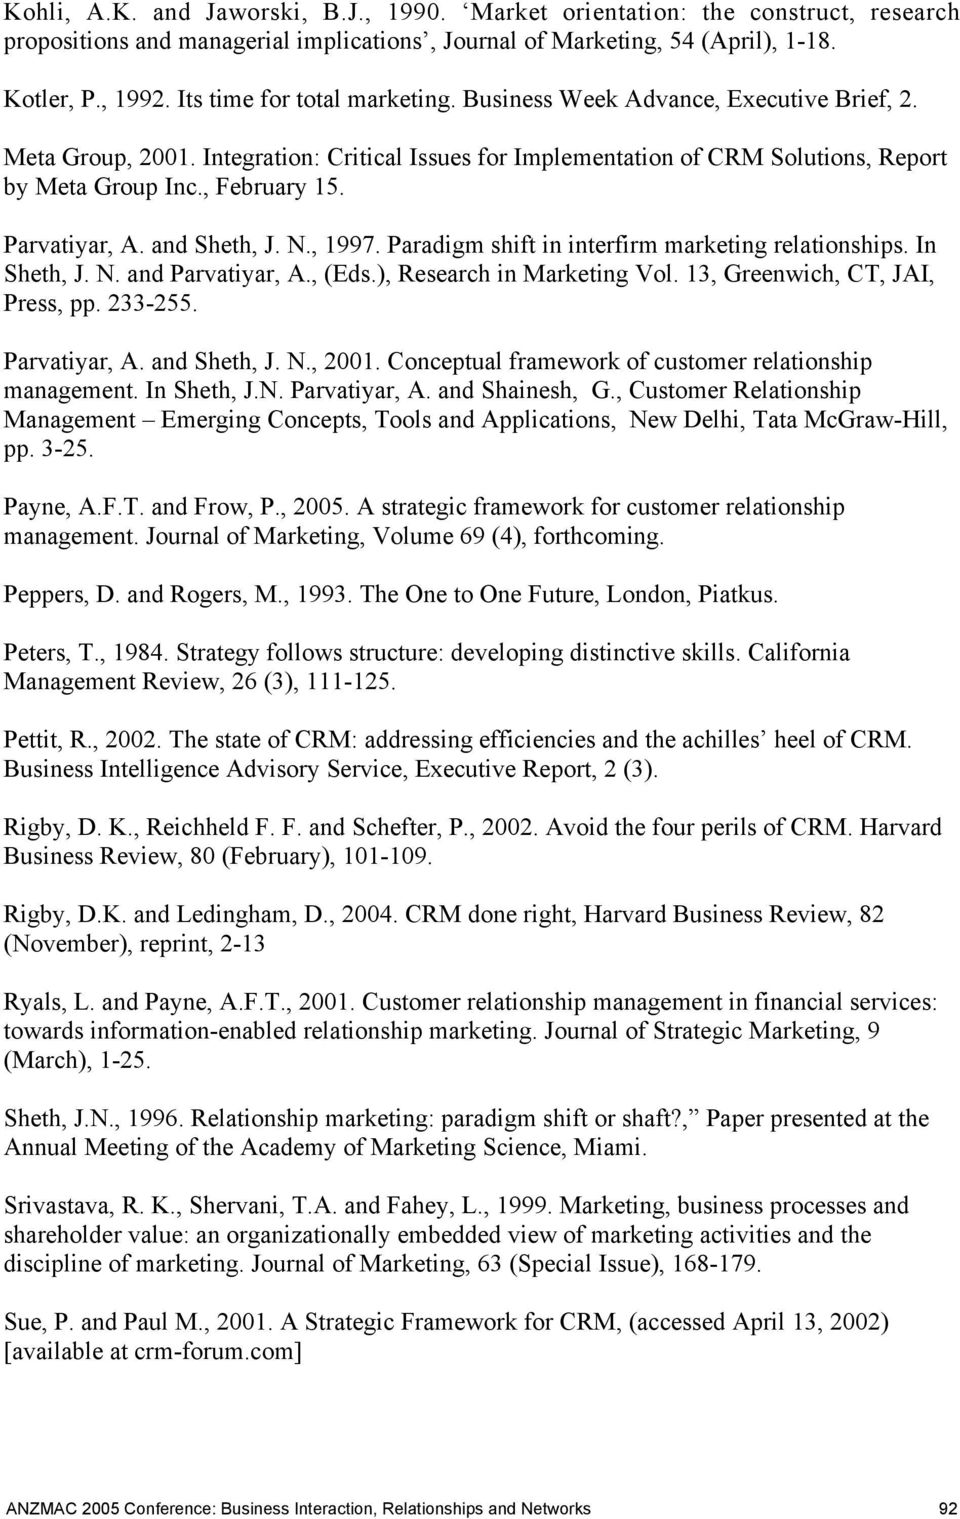 Parvatiyar, A. and Sheth, J. N., 1997. Paradigm shift in interfirm marketing relationships. In Sheth, J. N. and Parvatiyar, A., (Eds.), Research in Marketing Vol. 13, Greenwich, CT, JAI, Press, pp.